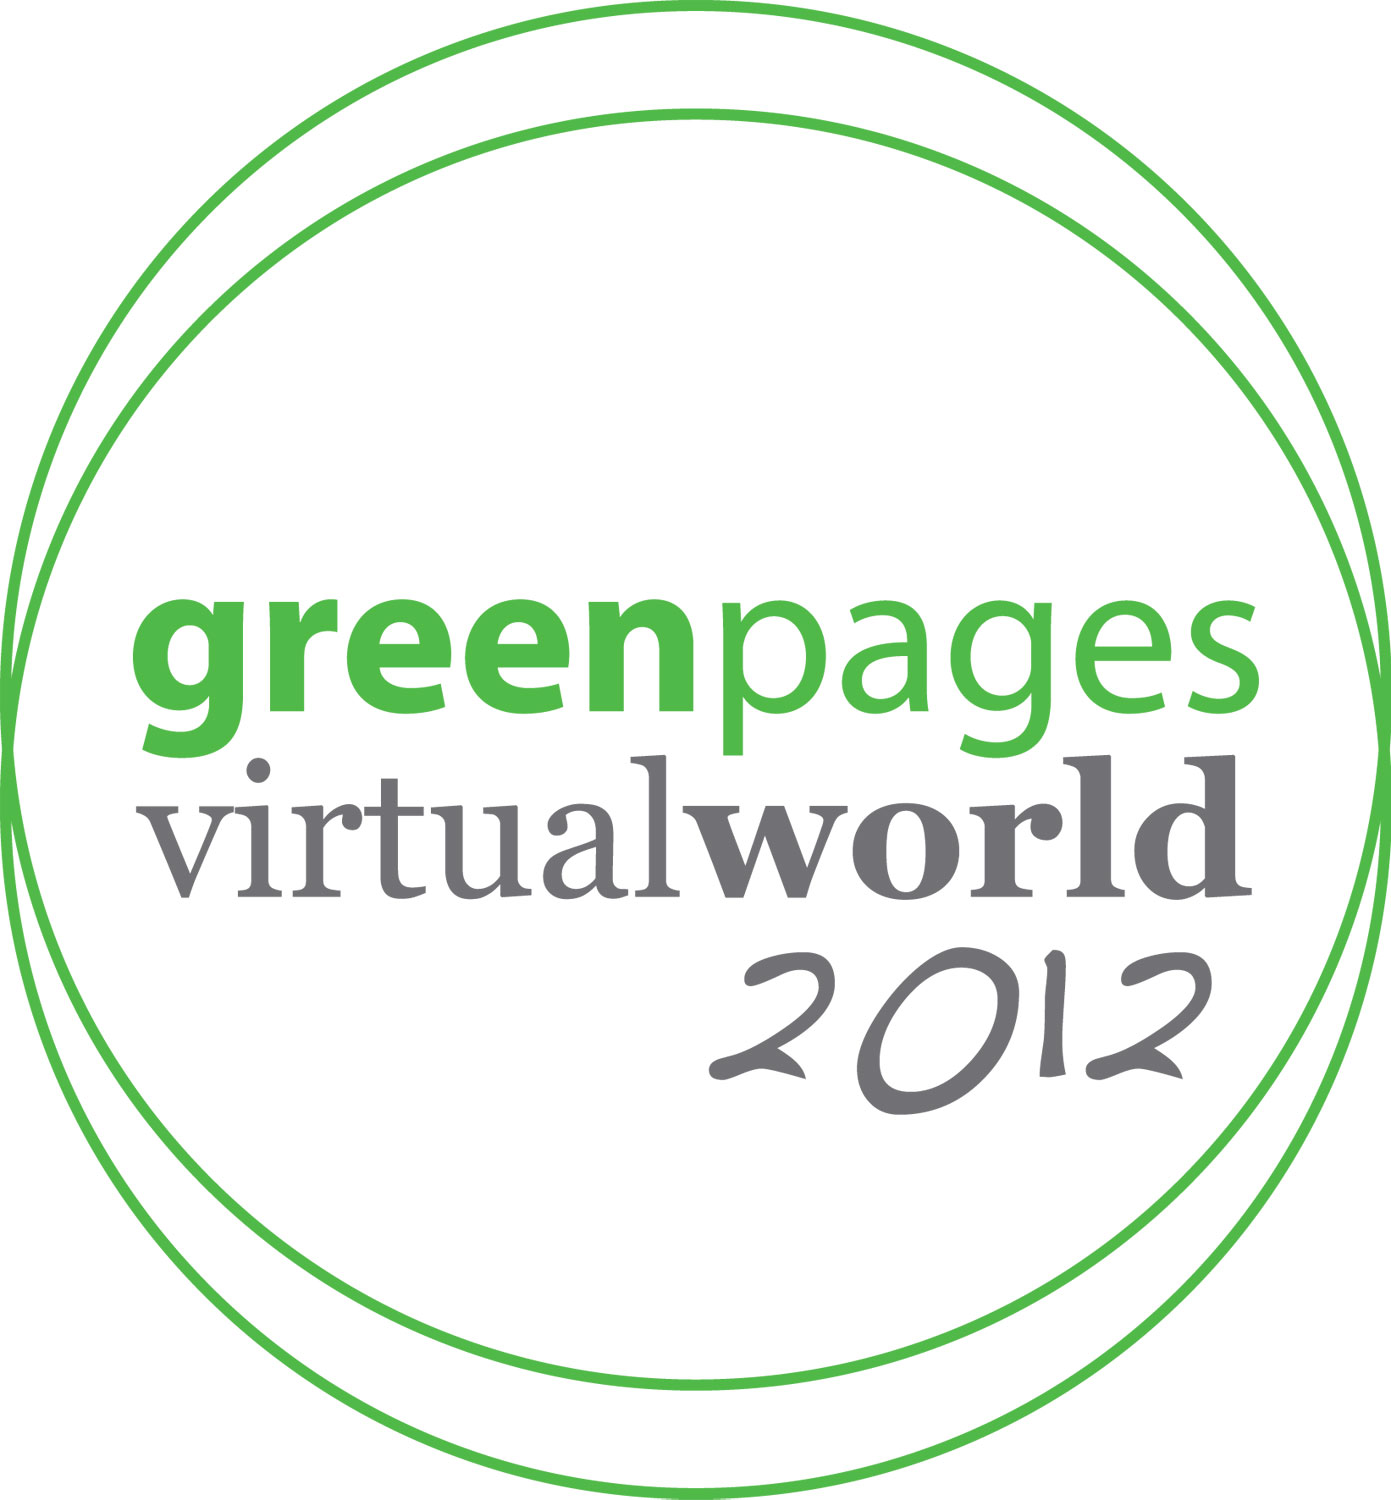 GreenPages Virtual World 2012